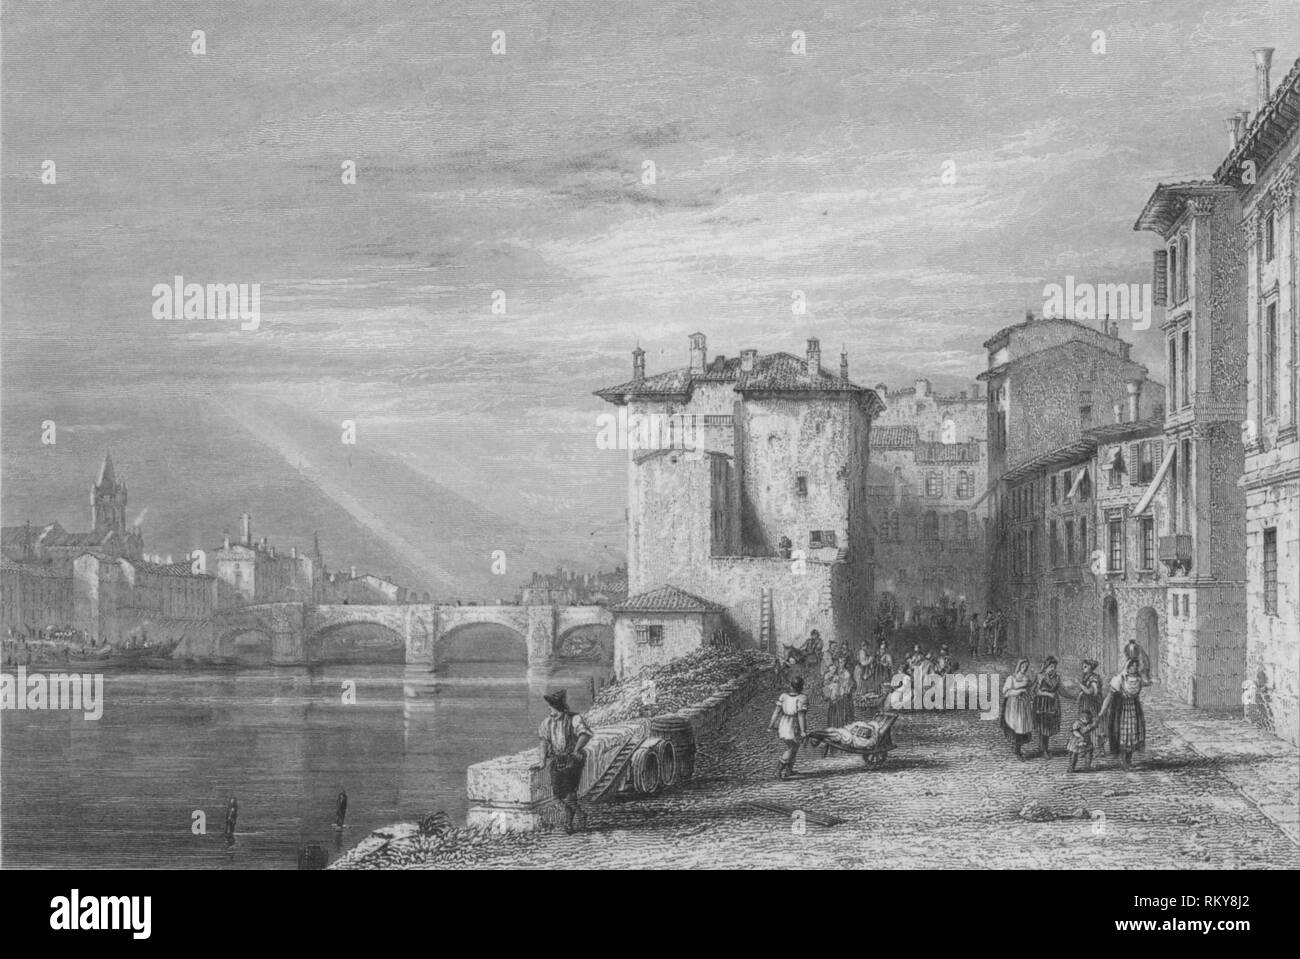 'Verona', 1832. View of the town of Verona in northern Italy: street scene in the foreground, with the bridge over the River Adige in the distance. [John Murray, London, 1832] - Stock Image